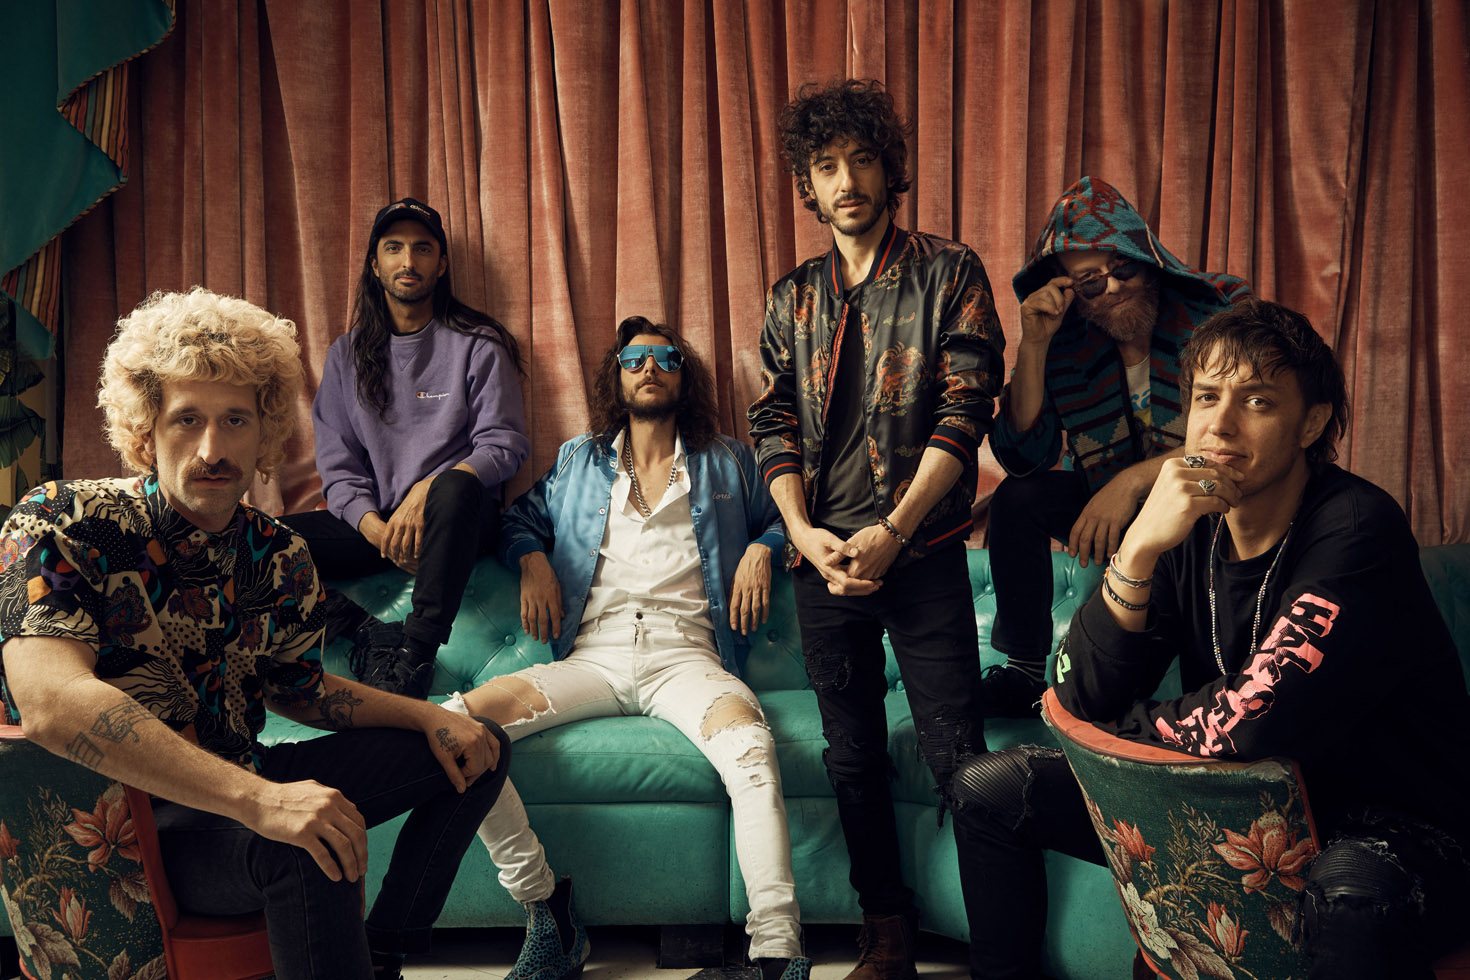 2018_01_31_Billboard_TheVoidz_Group1_0071-1a_WEB.jpg